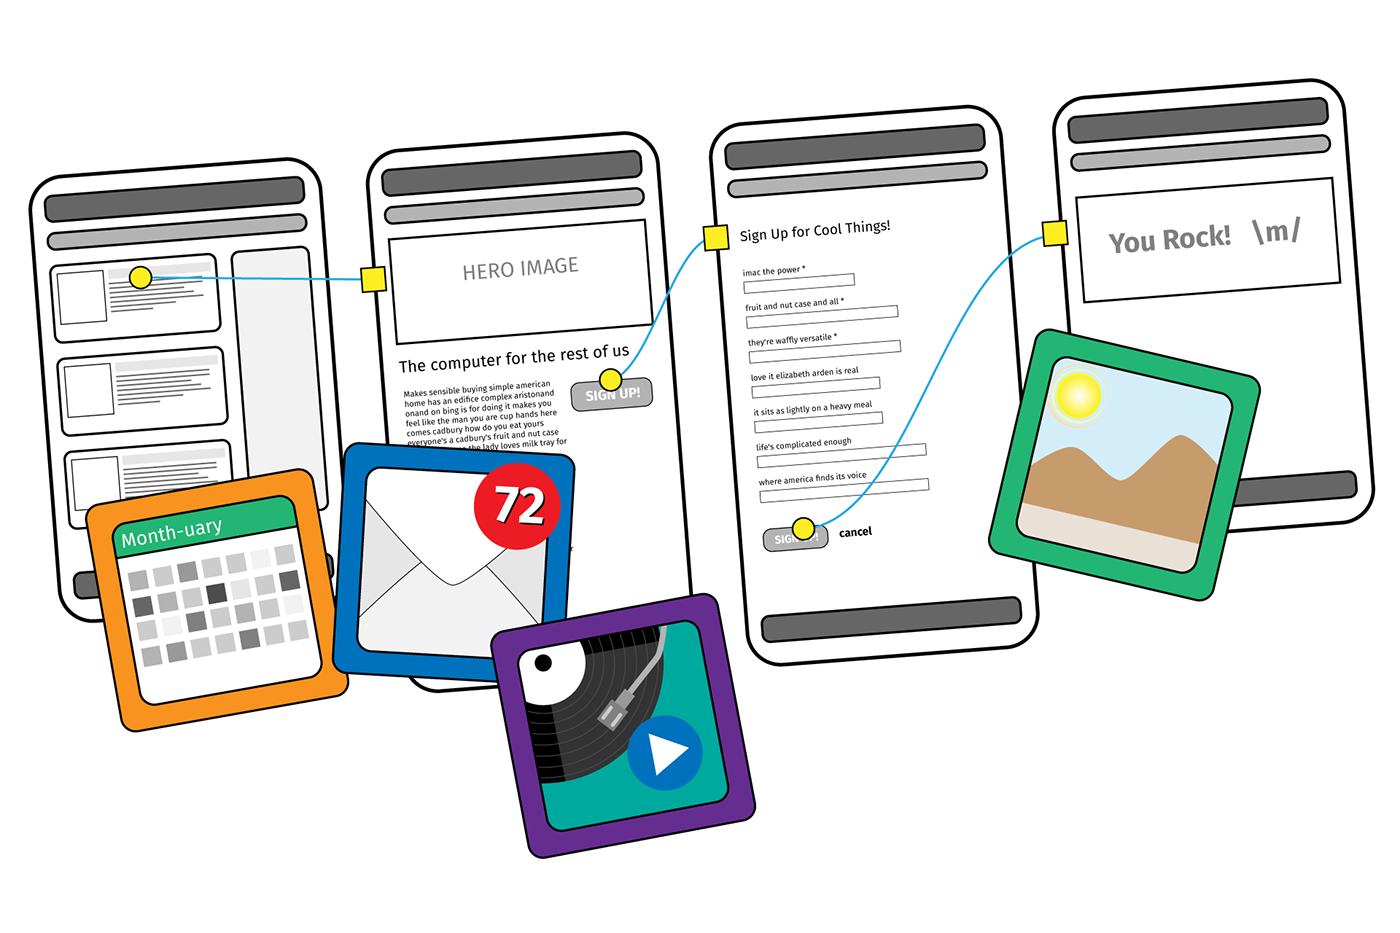 four page workflow mockup with common application icons arranged over the top of the workflow.